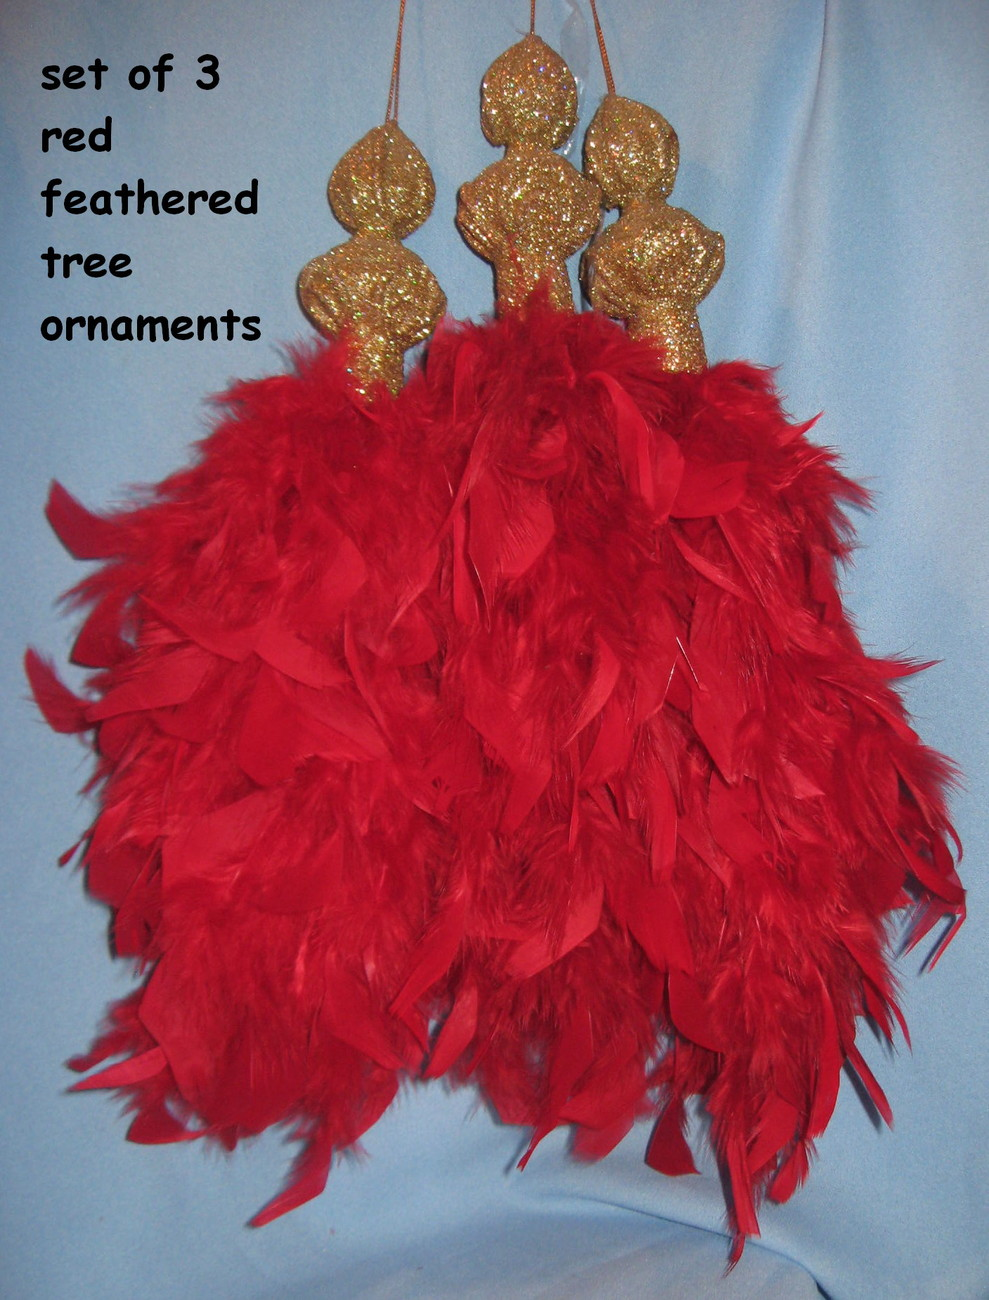 Feather holiday Tree Ornaments set 3 Christmas red gold elegant unique H20